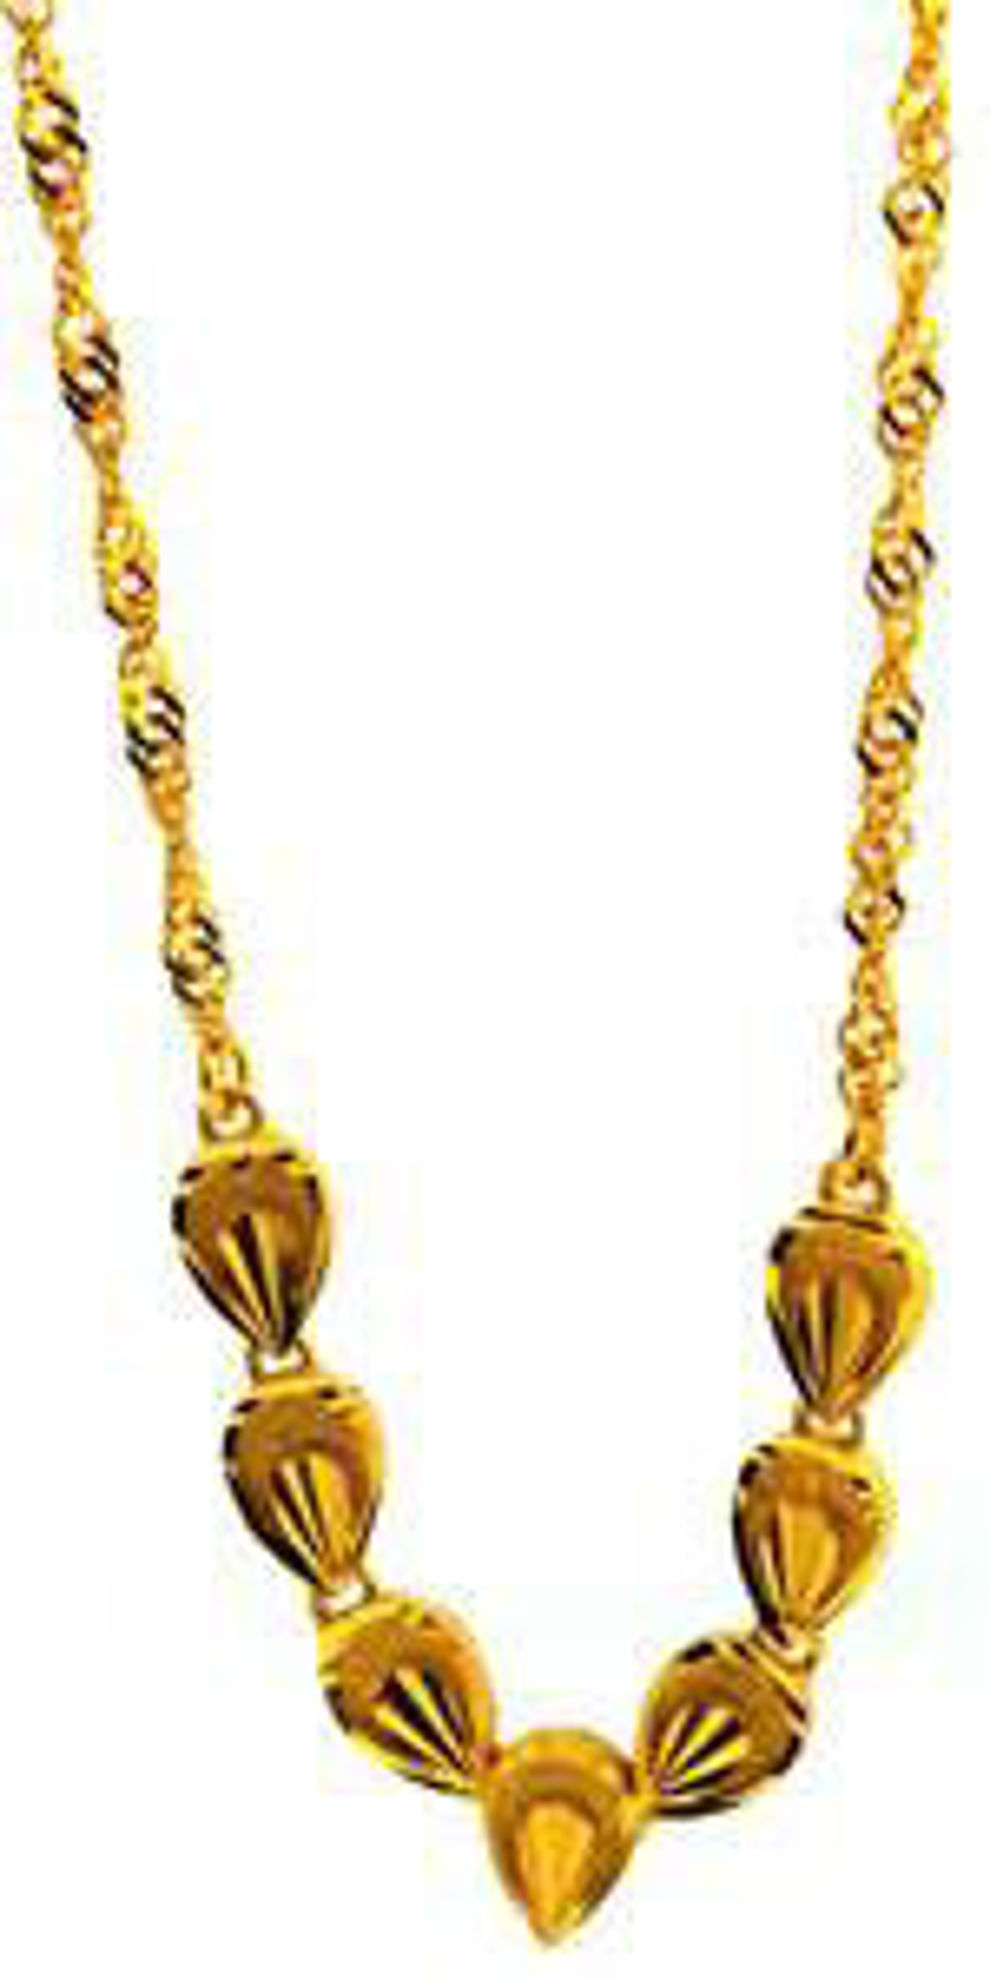 Picture of Necklaces 22kt-8.8 DWT, 13.7 Grams